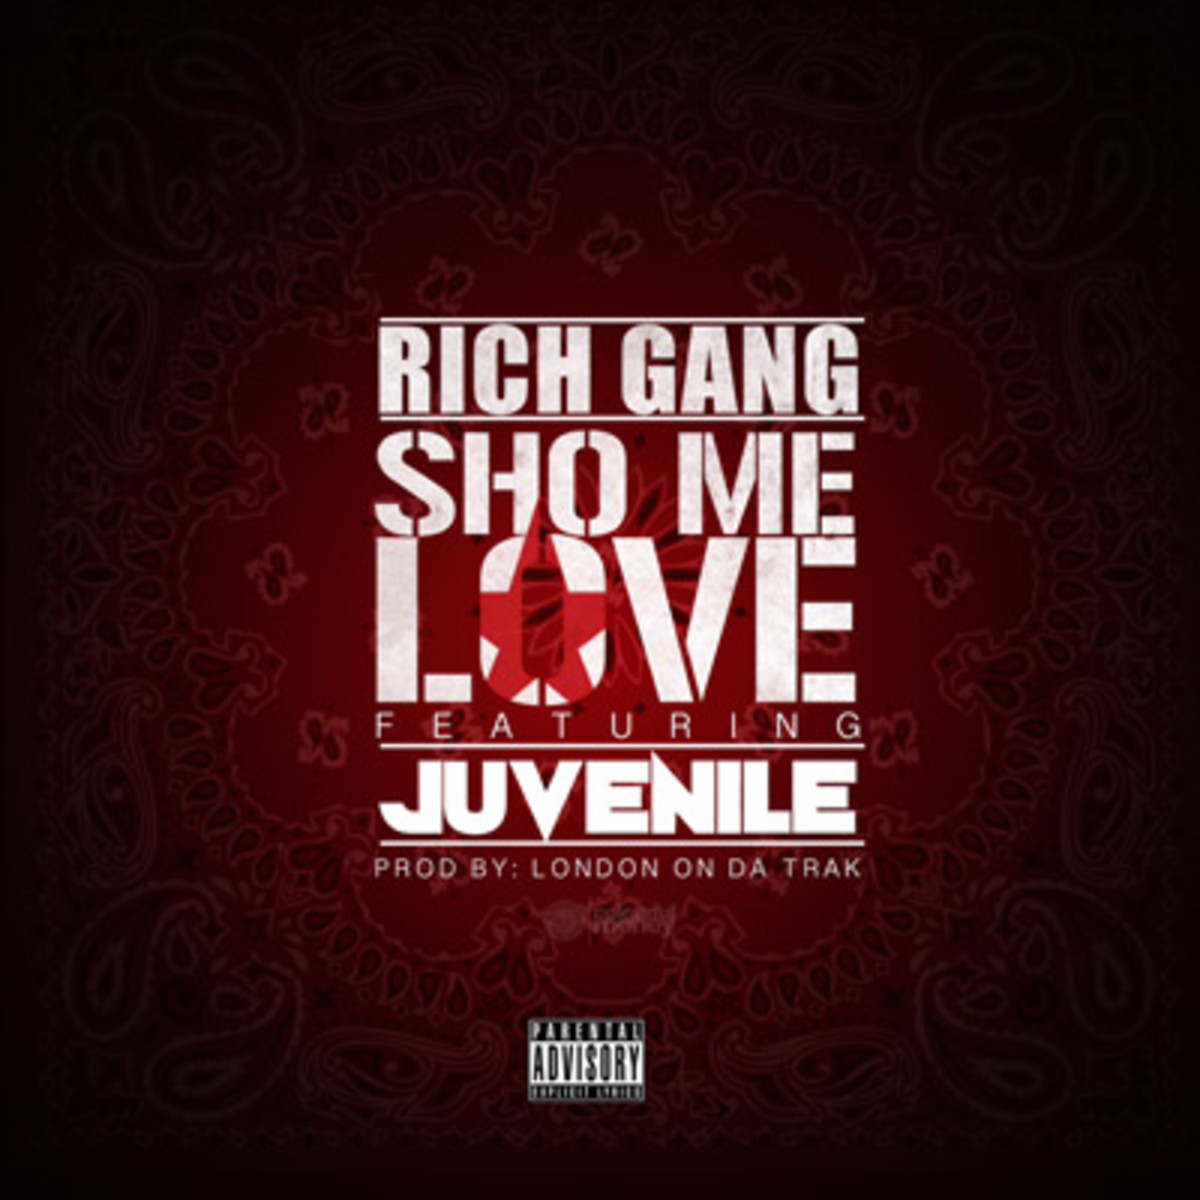 richgang-showmelove.jpg